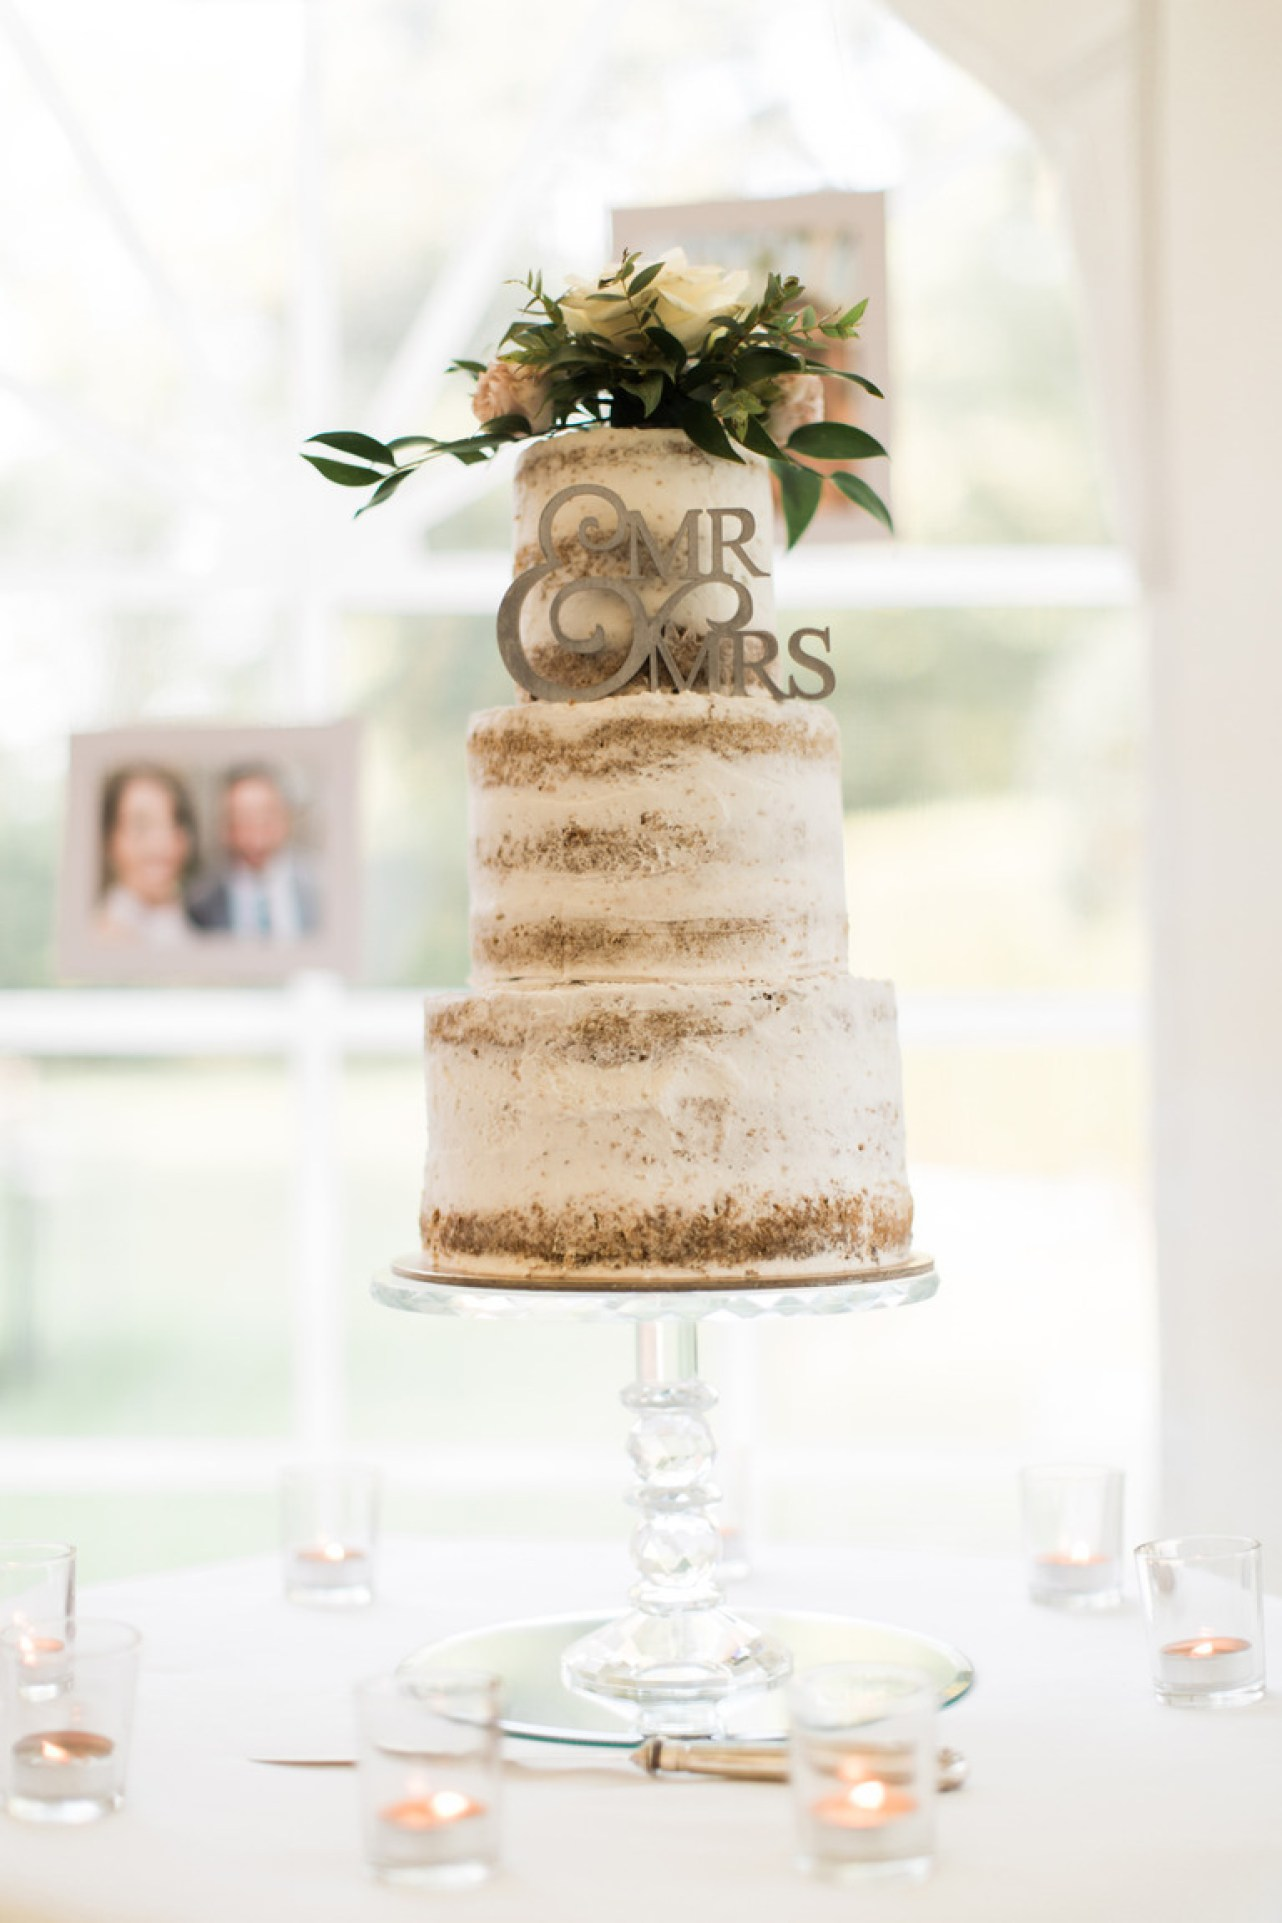 Wedding Naked Cake at Chateau la Durantie in France